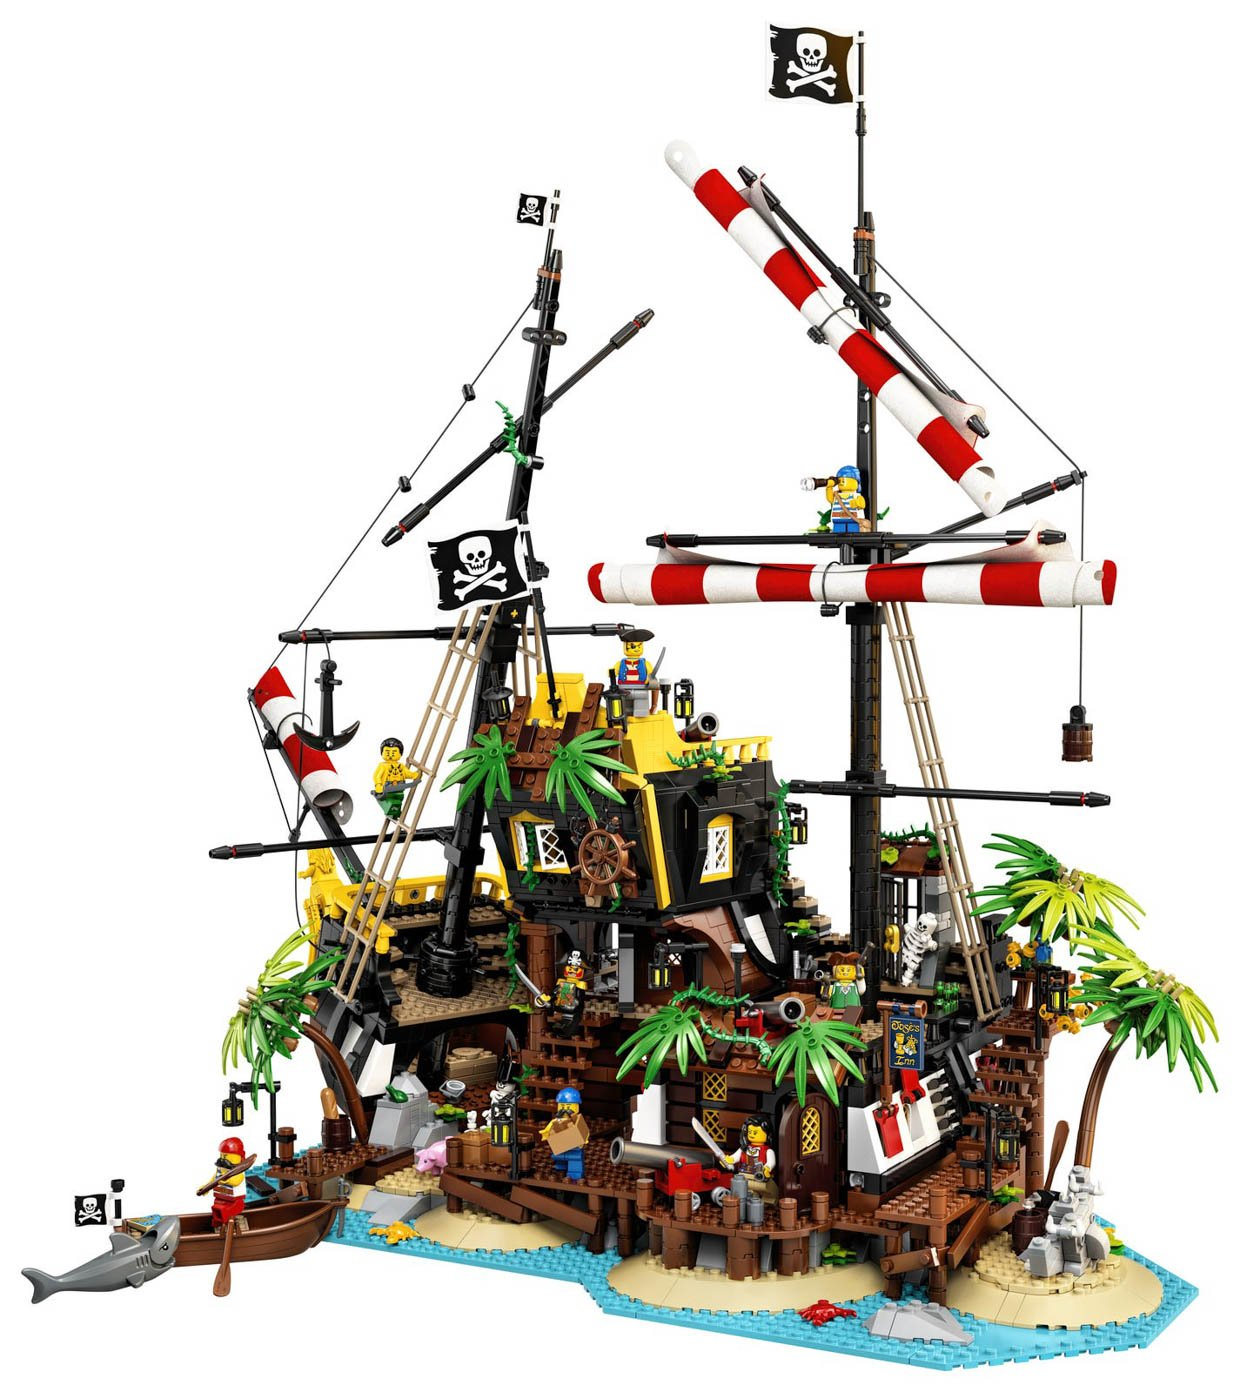 Build A Pirate Shipwreck With The Lego Ideas Pirates Of